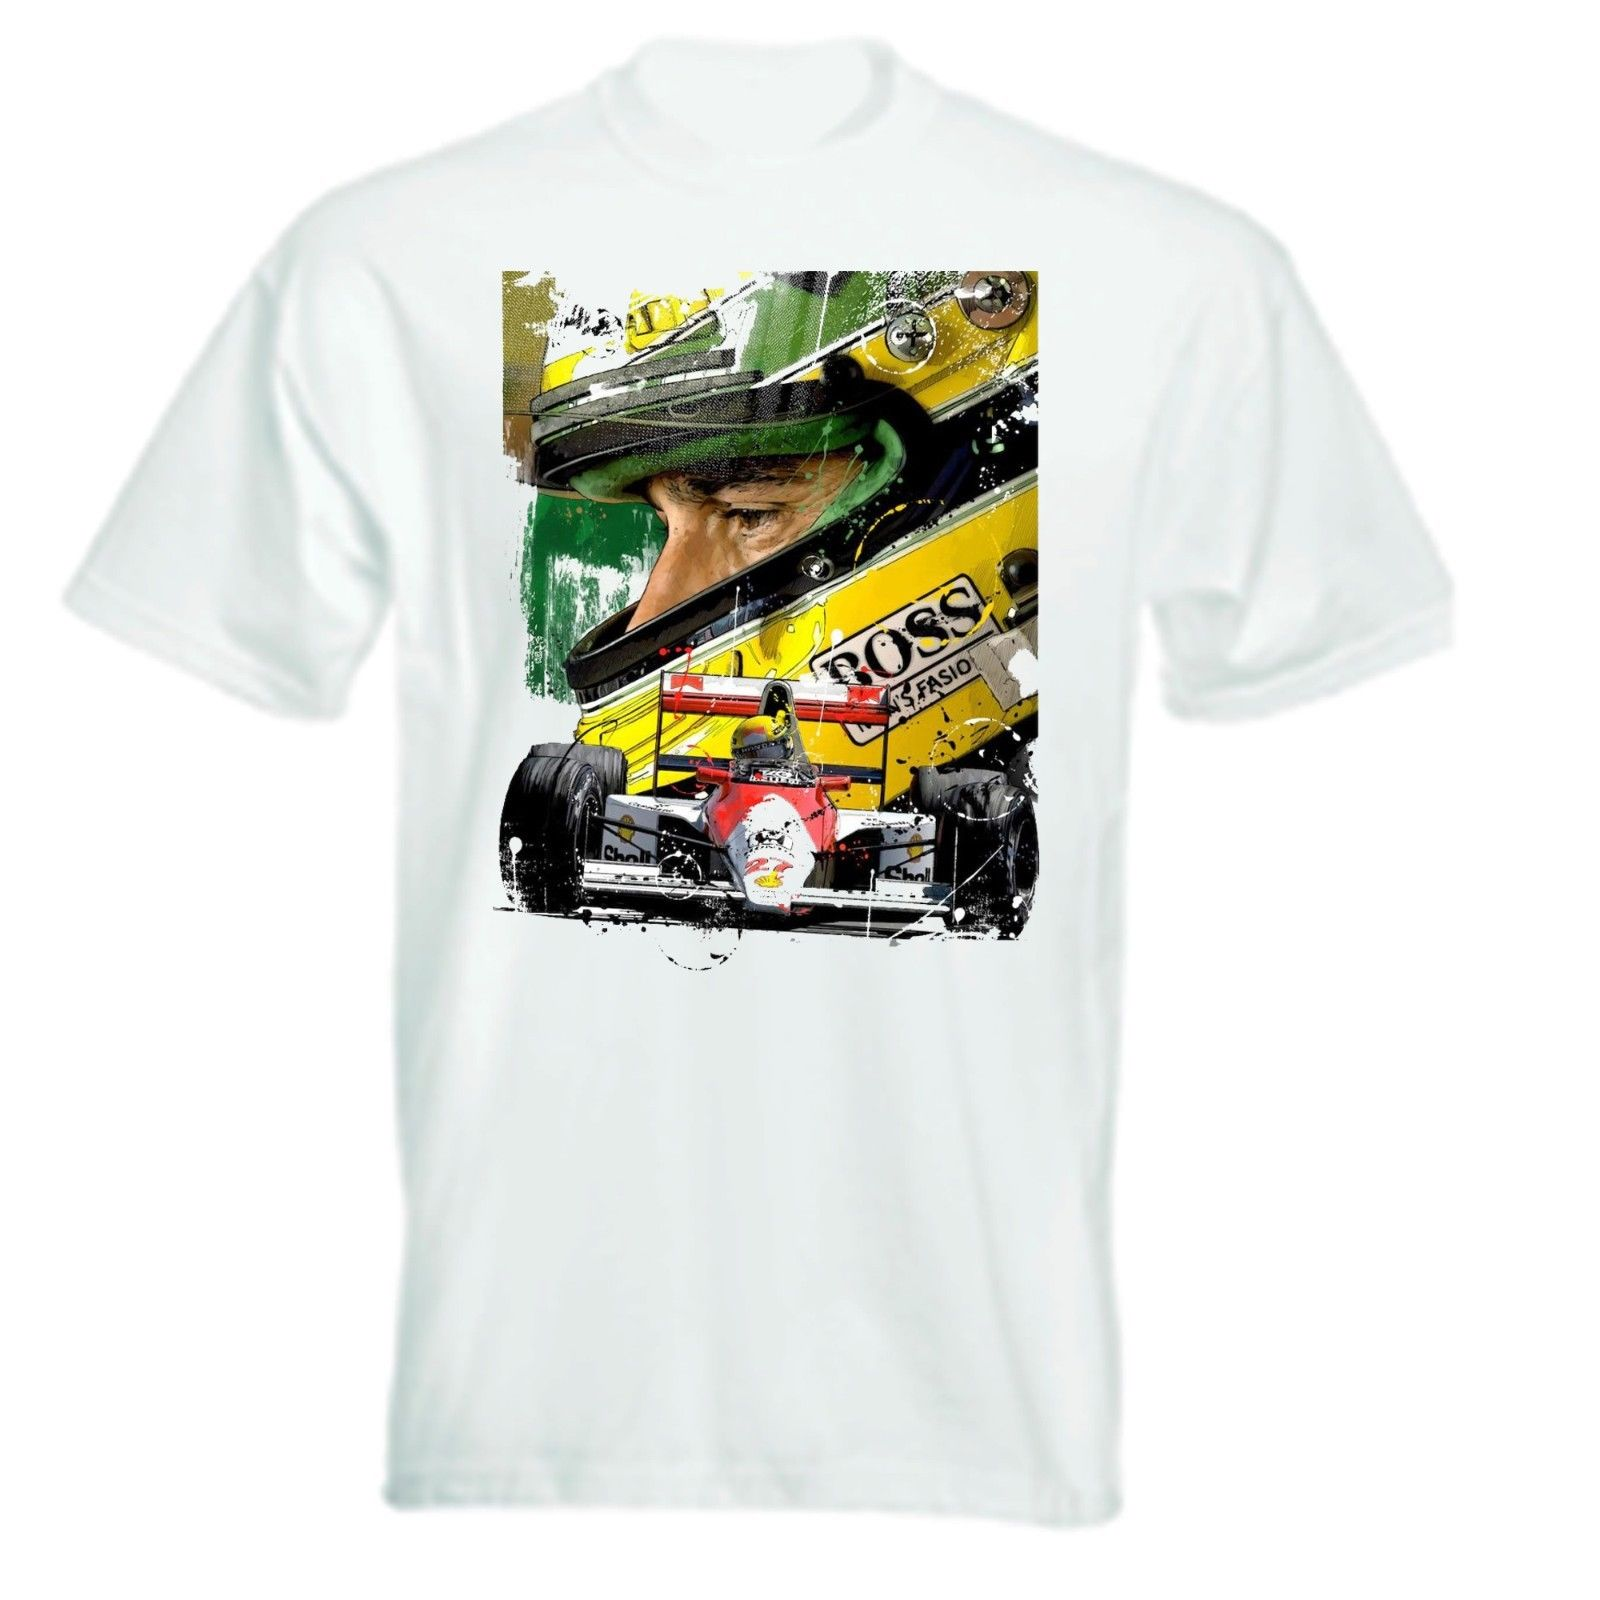 ayrton-font-b-senna-b-font-artwork-t-shirt-cool-casual-tee-shirt-short-sleeve-men-new-fashion-t-shirt-hot-selling-men's-clothing